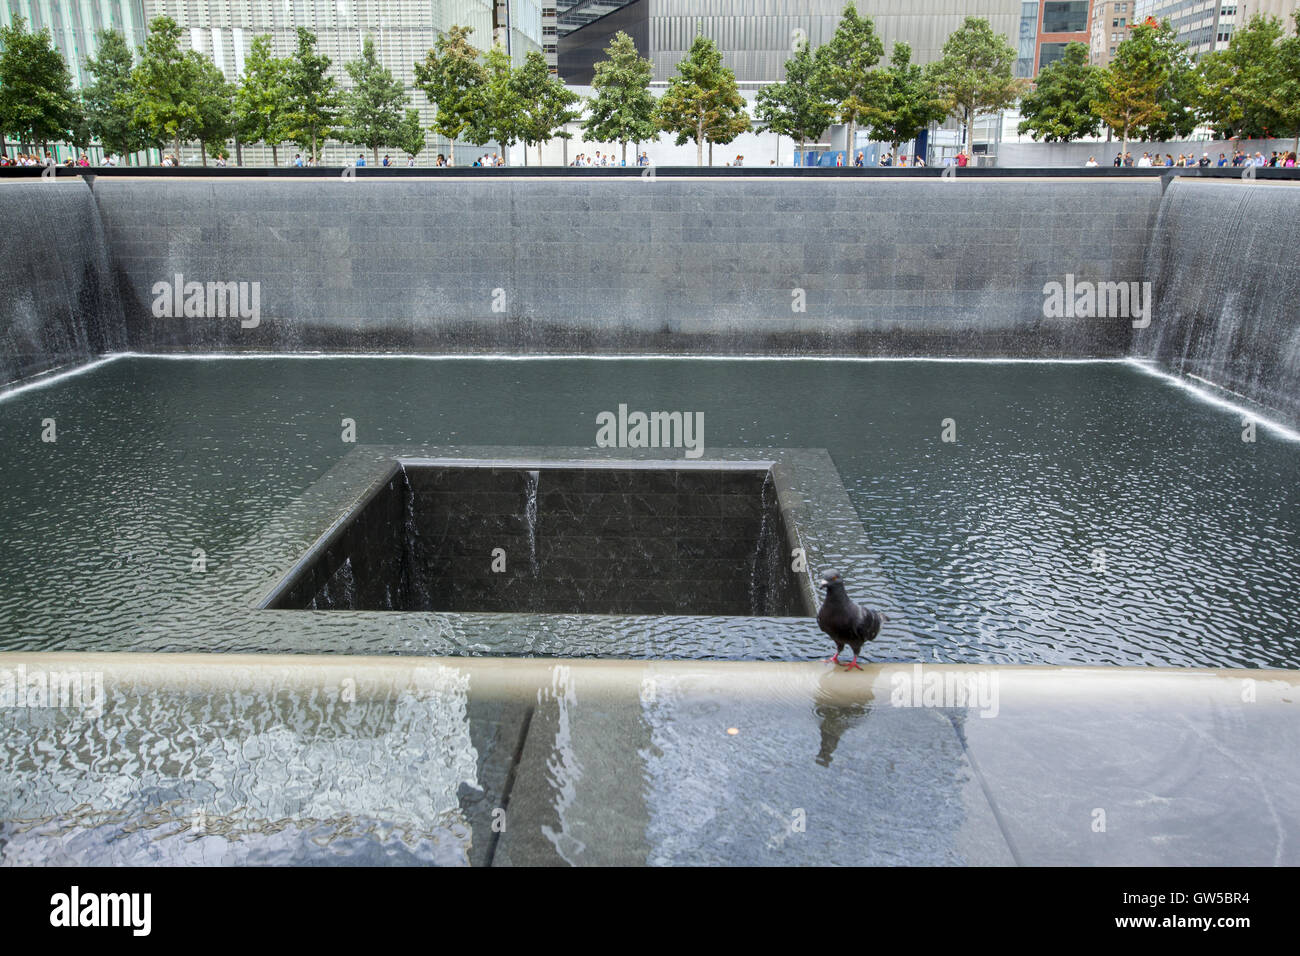 North reflecting pool at the 9/11 Memorial site in Manhattan. - Stock Image